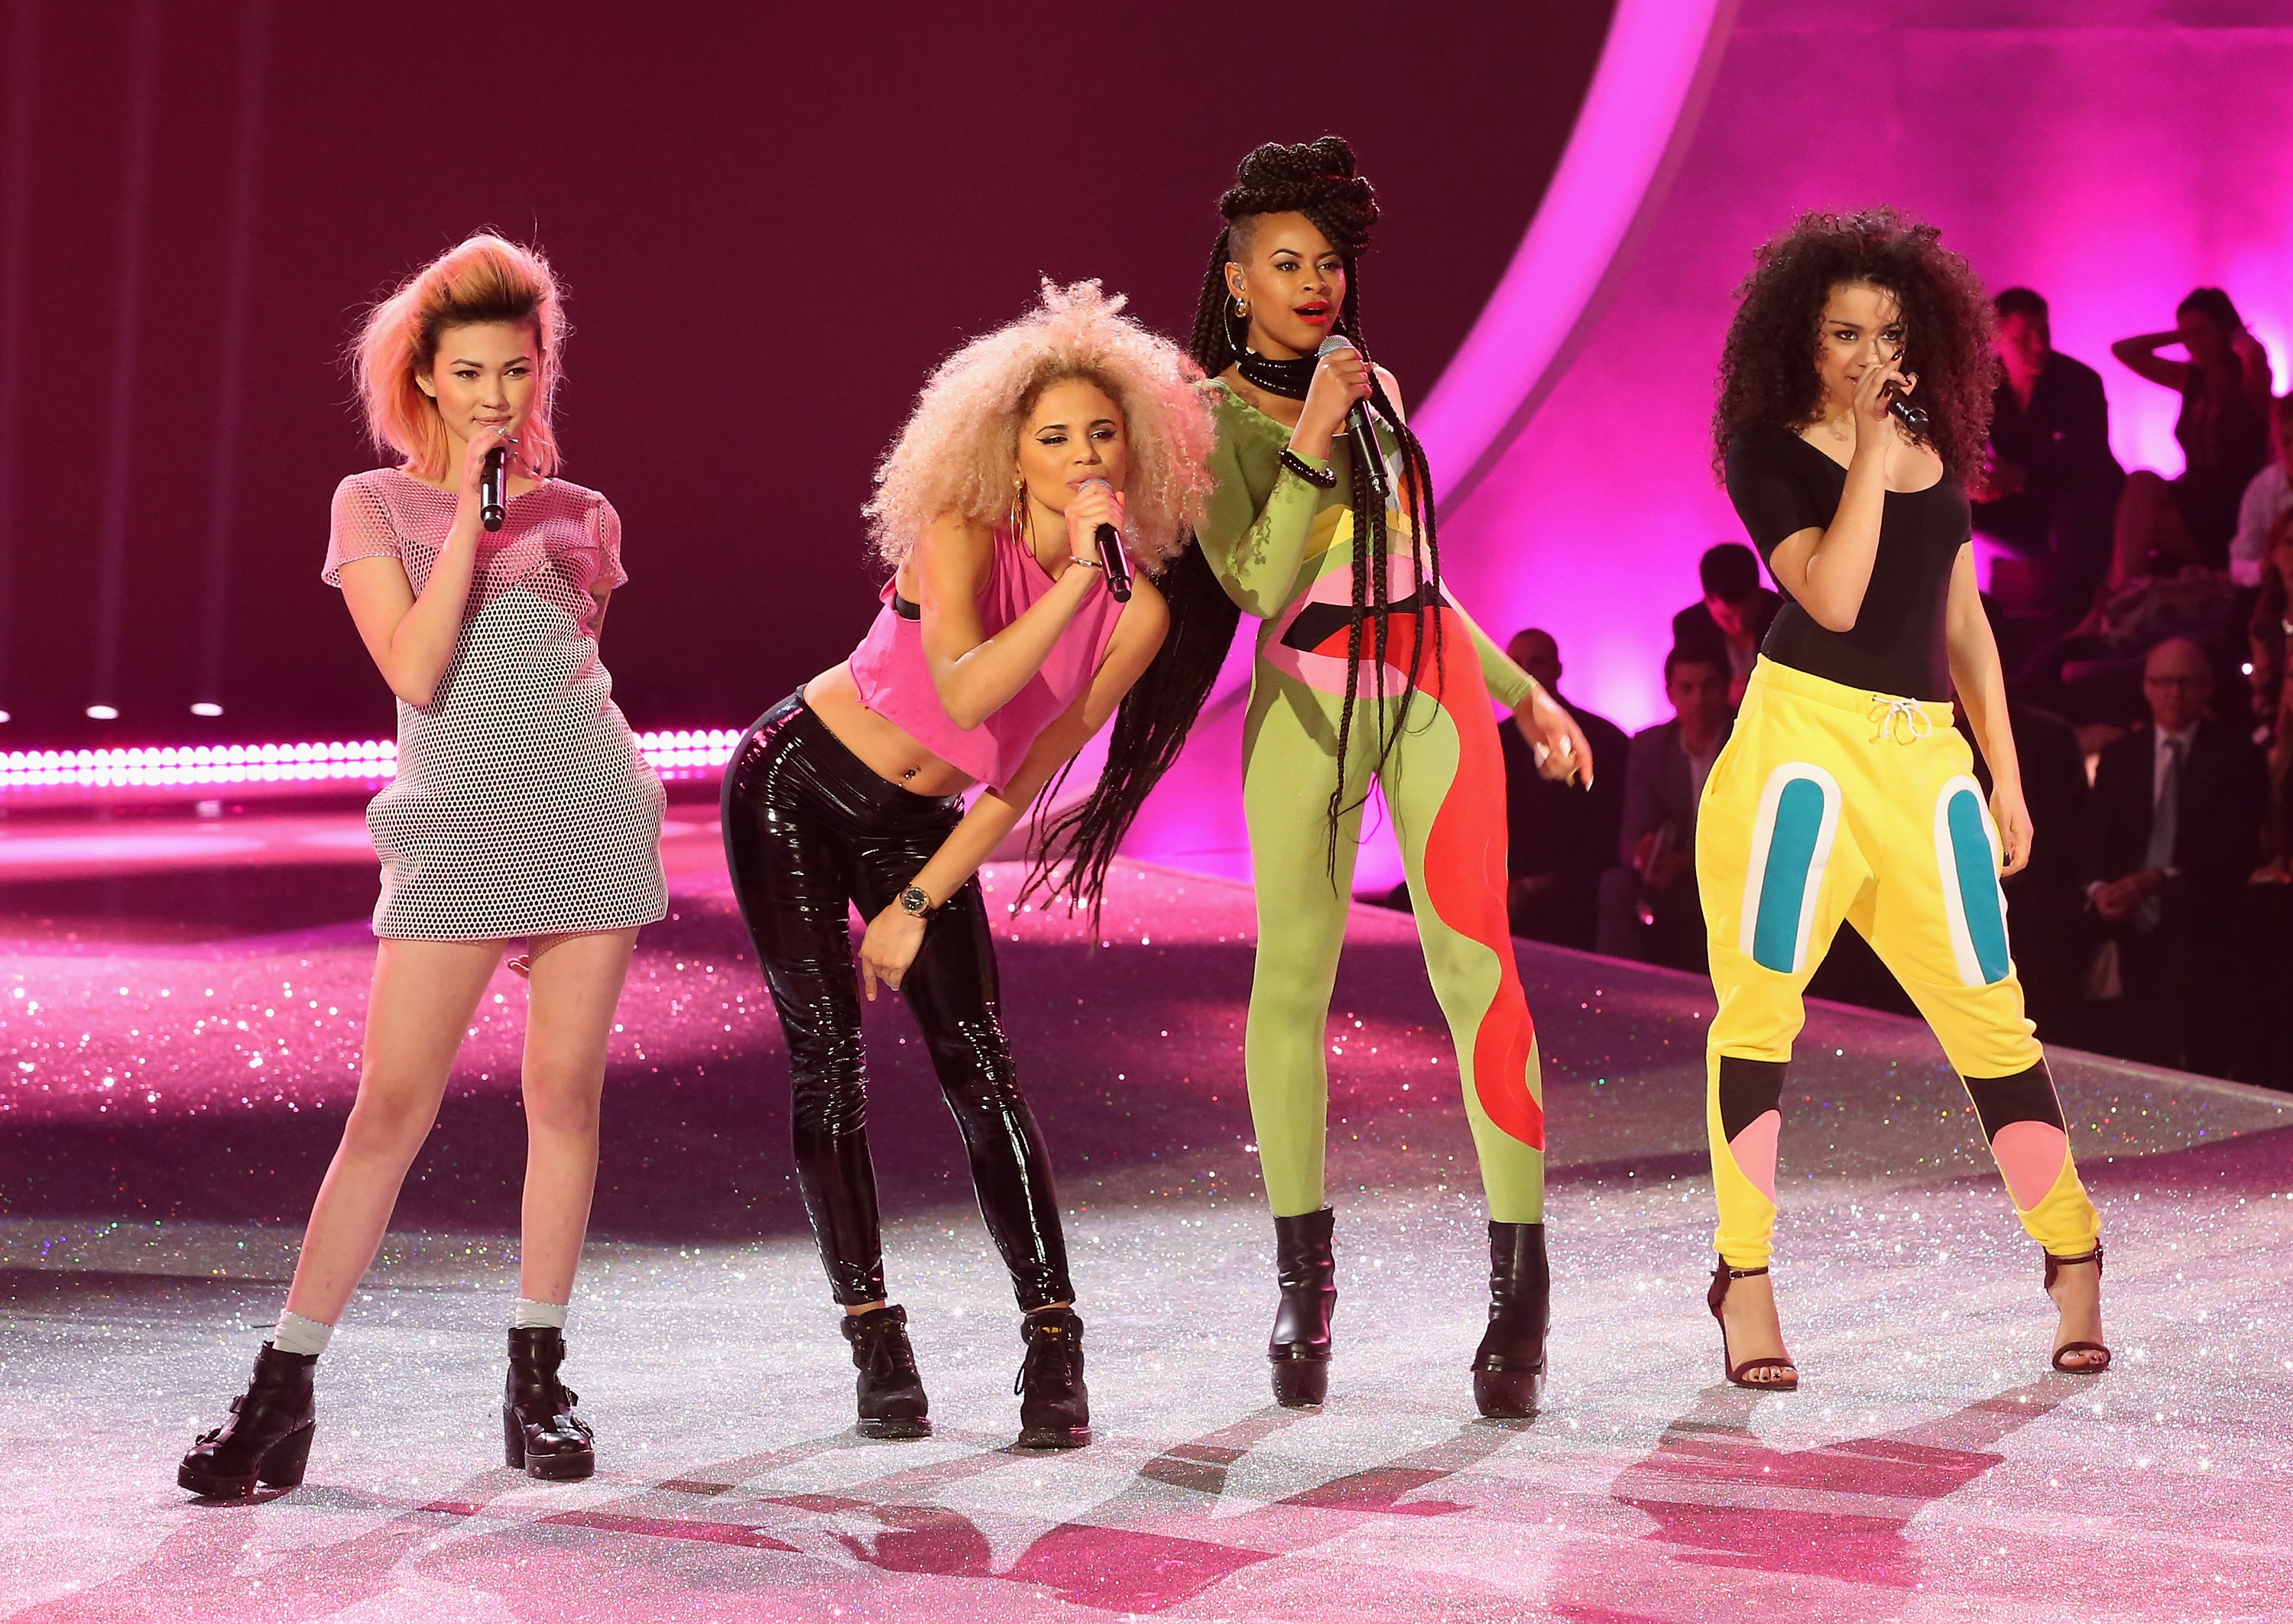 Victoria's Secret 2013 Fashion Show Music acts to emerge in